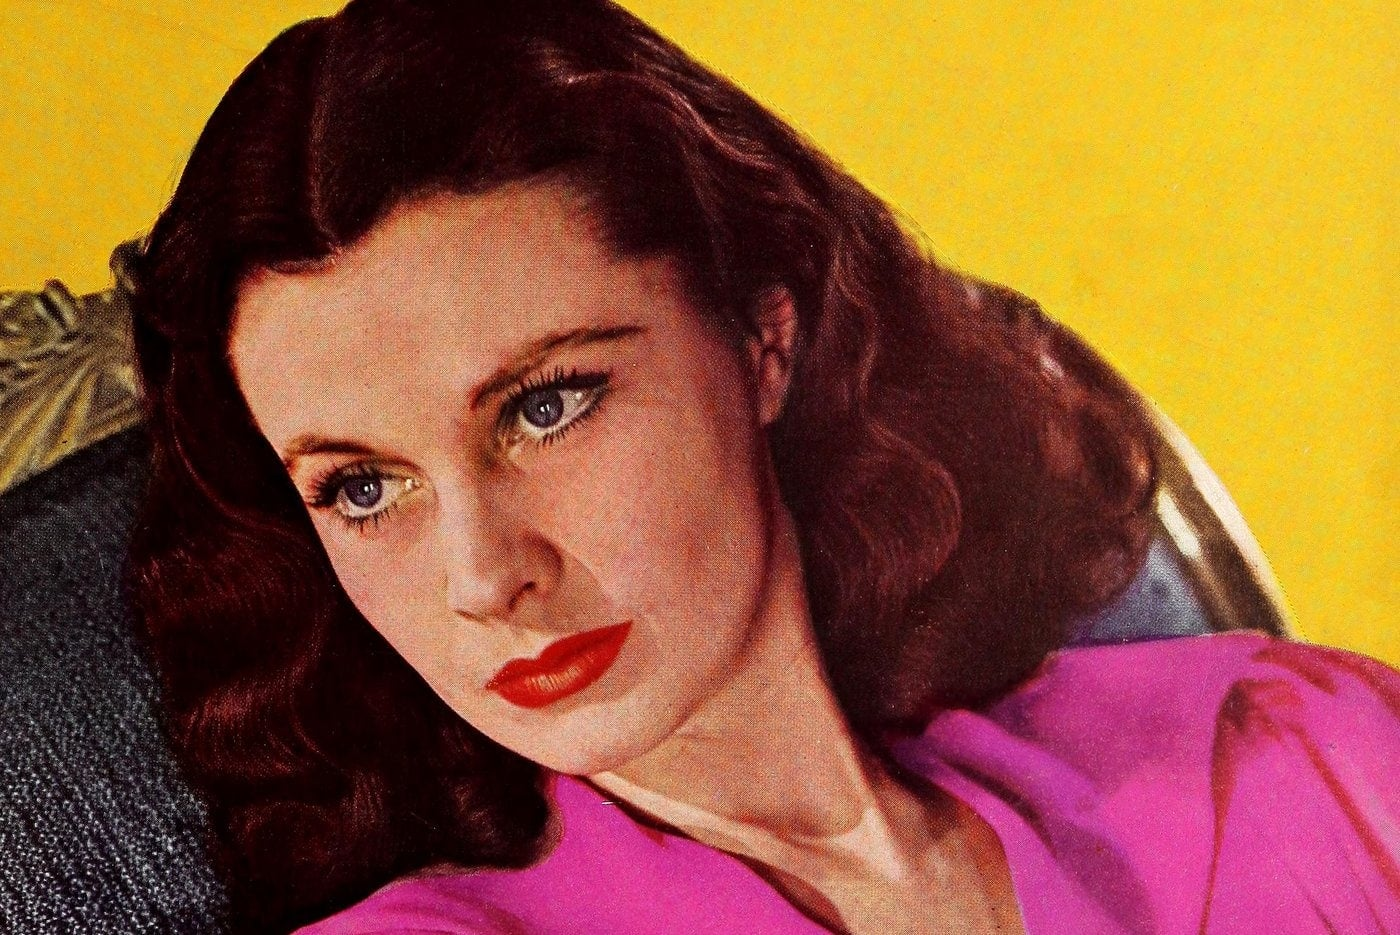 Actress Vivien Leigh on her career and playing Scarlett O'Hara